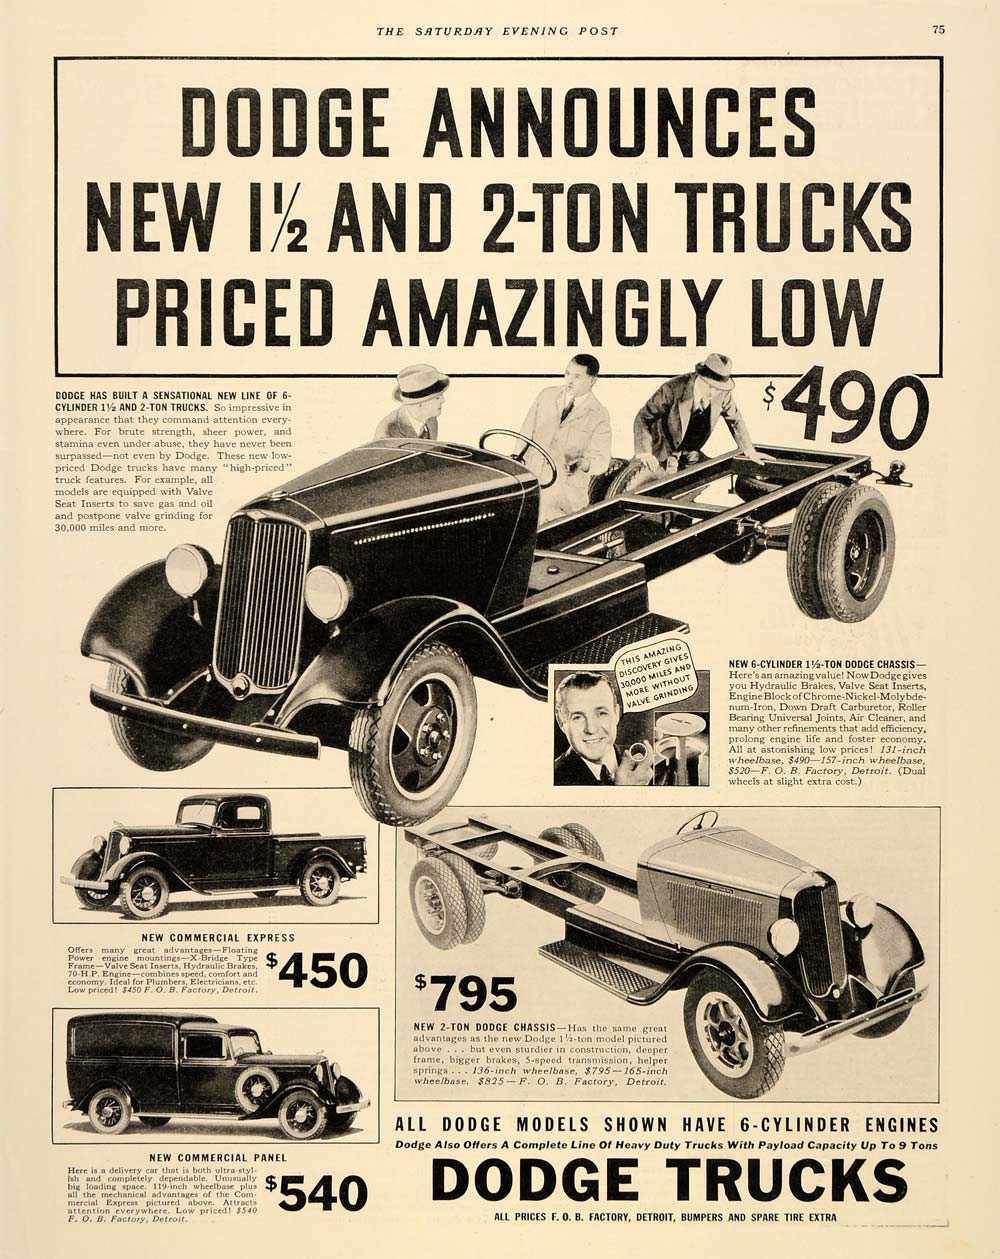 1933 Ad Commercial Express Panel Chassis Dodge Trucks - ORIGINAL SEP3